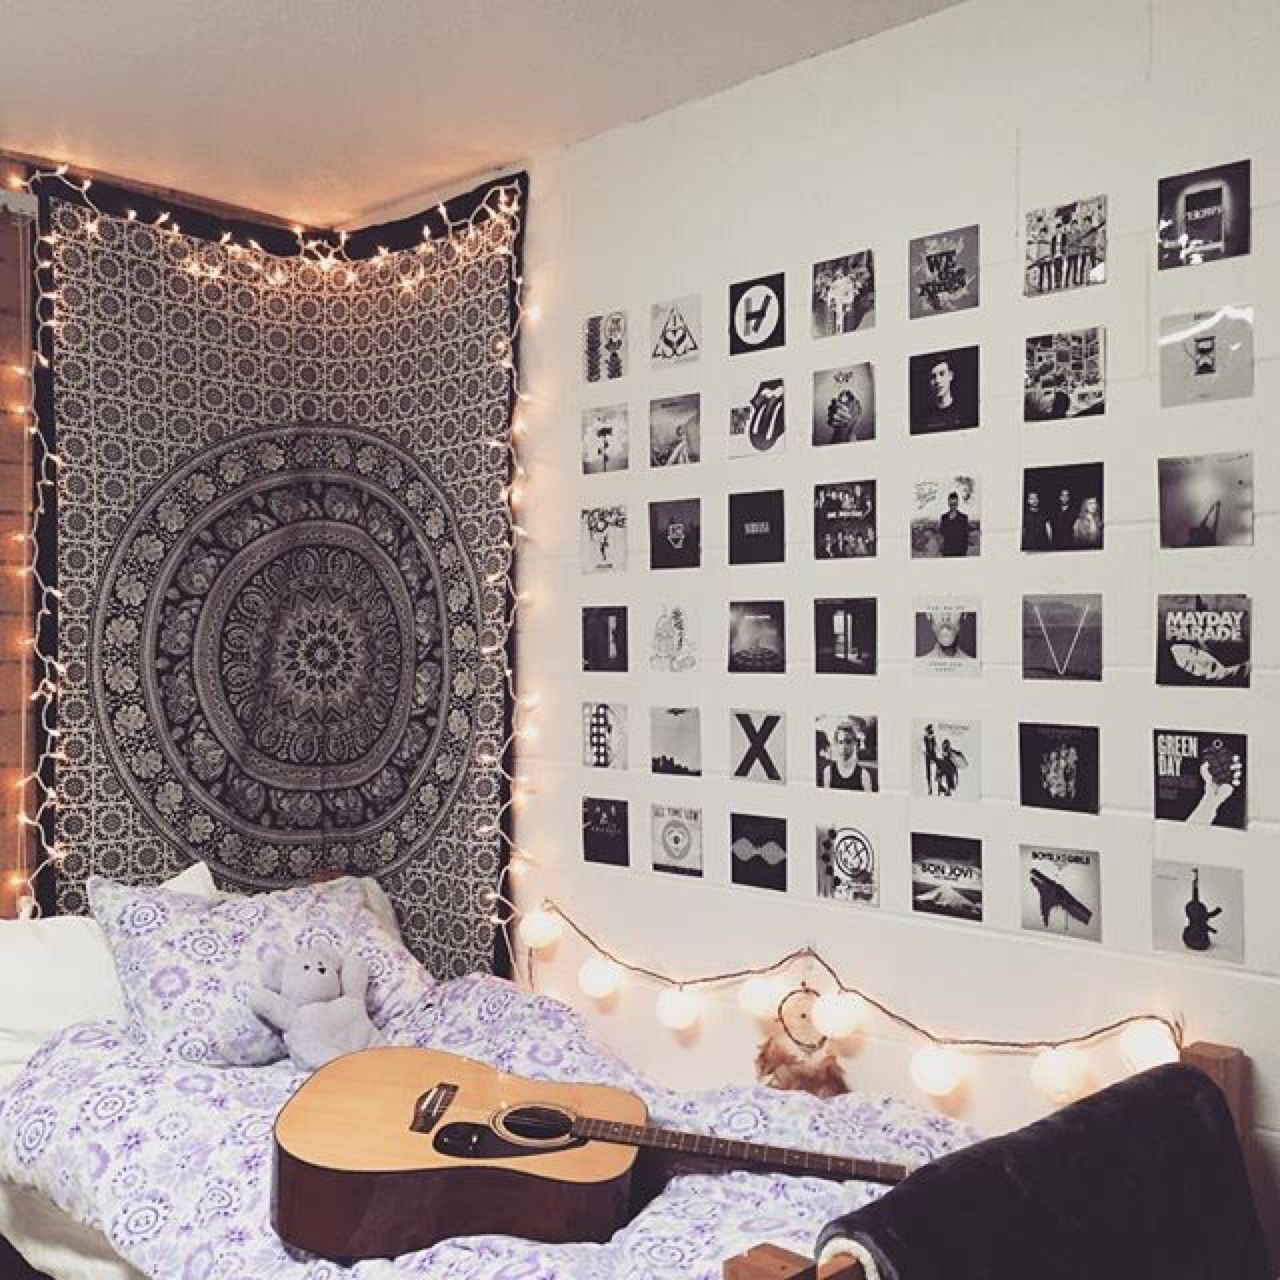 Diy bedroom decorating ideas tumblr - Source Myroomspo Tapestry Bedroom Tumblr Bedroom Decoration Room Decor Diy Room Inspiration Poster Lights Fairy Lights